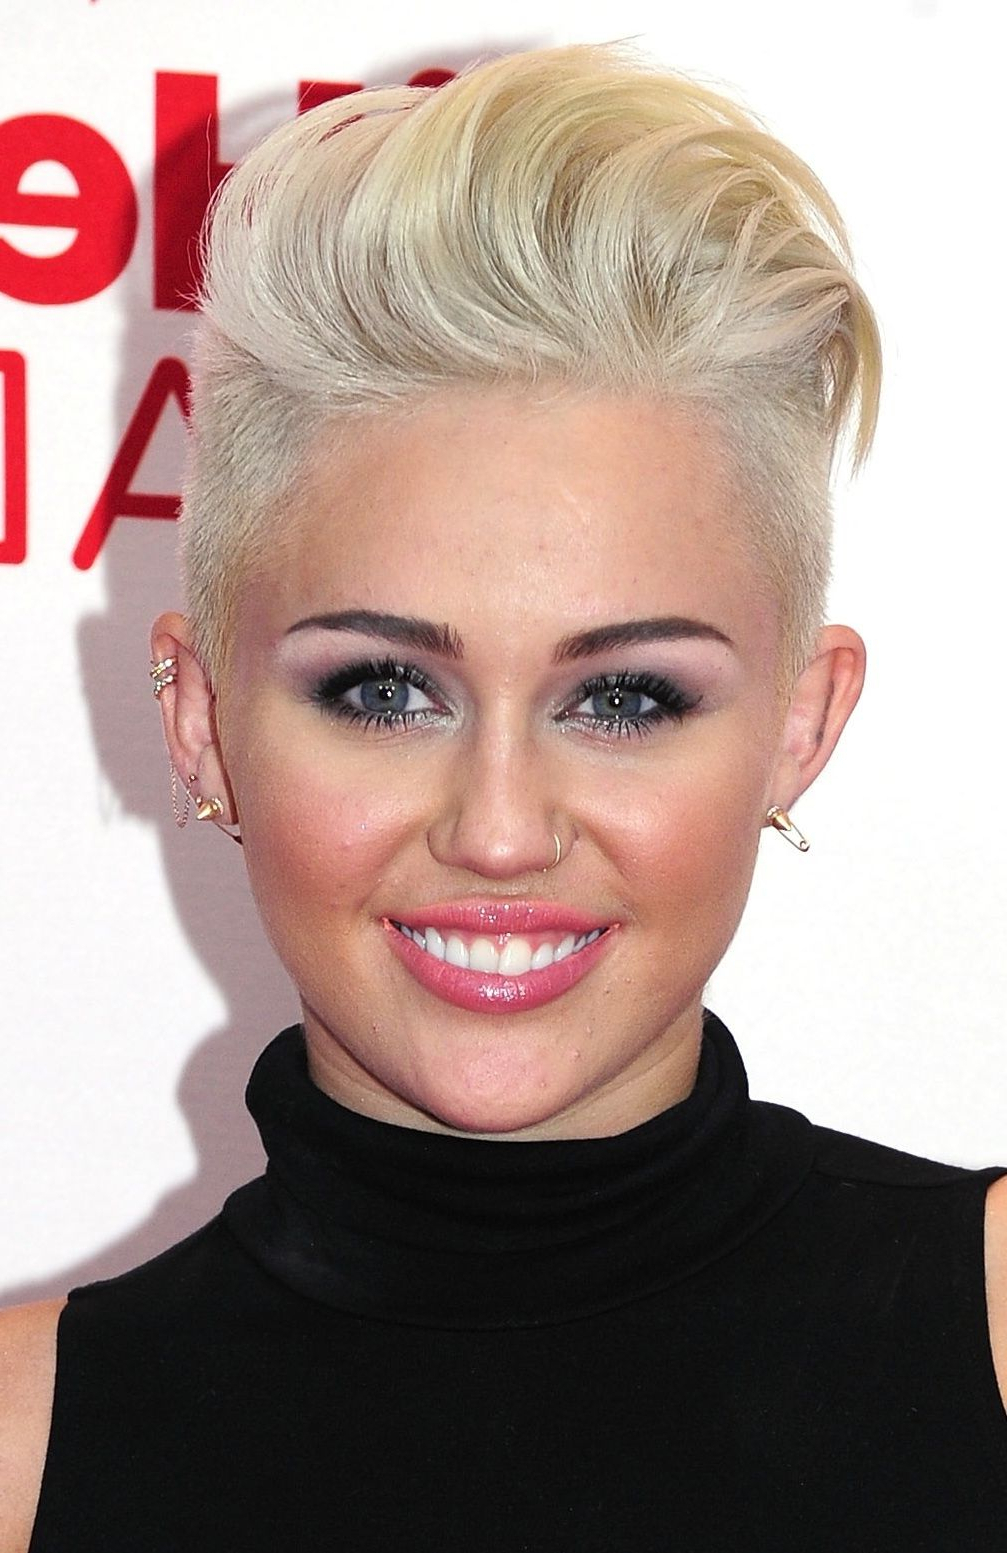 Miley Cyrus Hairstyles Over The Years   Fan Of Stan Lee   Pinterest With Short Haircuts Like Miley Cyrus (View 9 of 25)